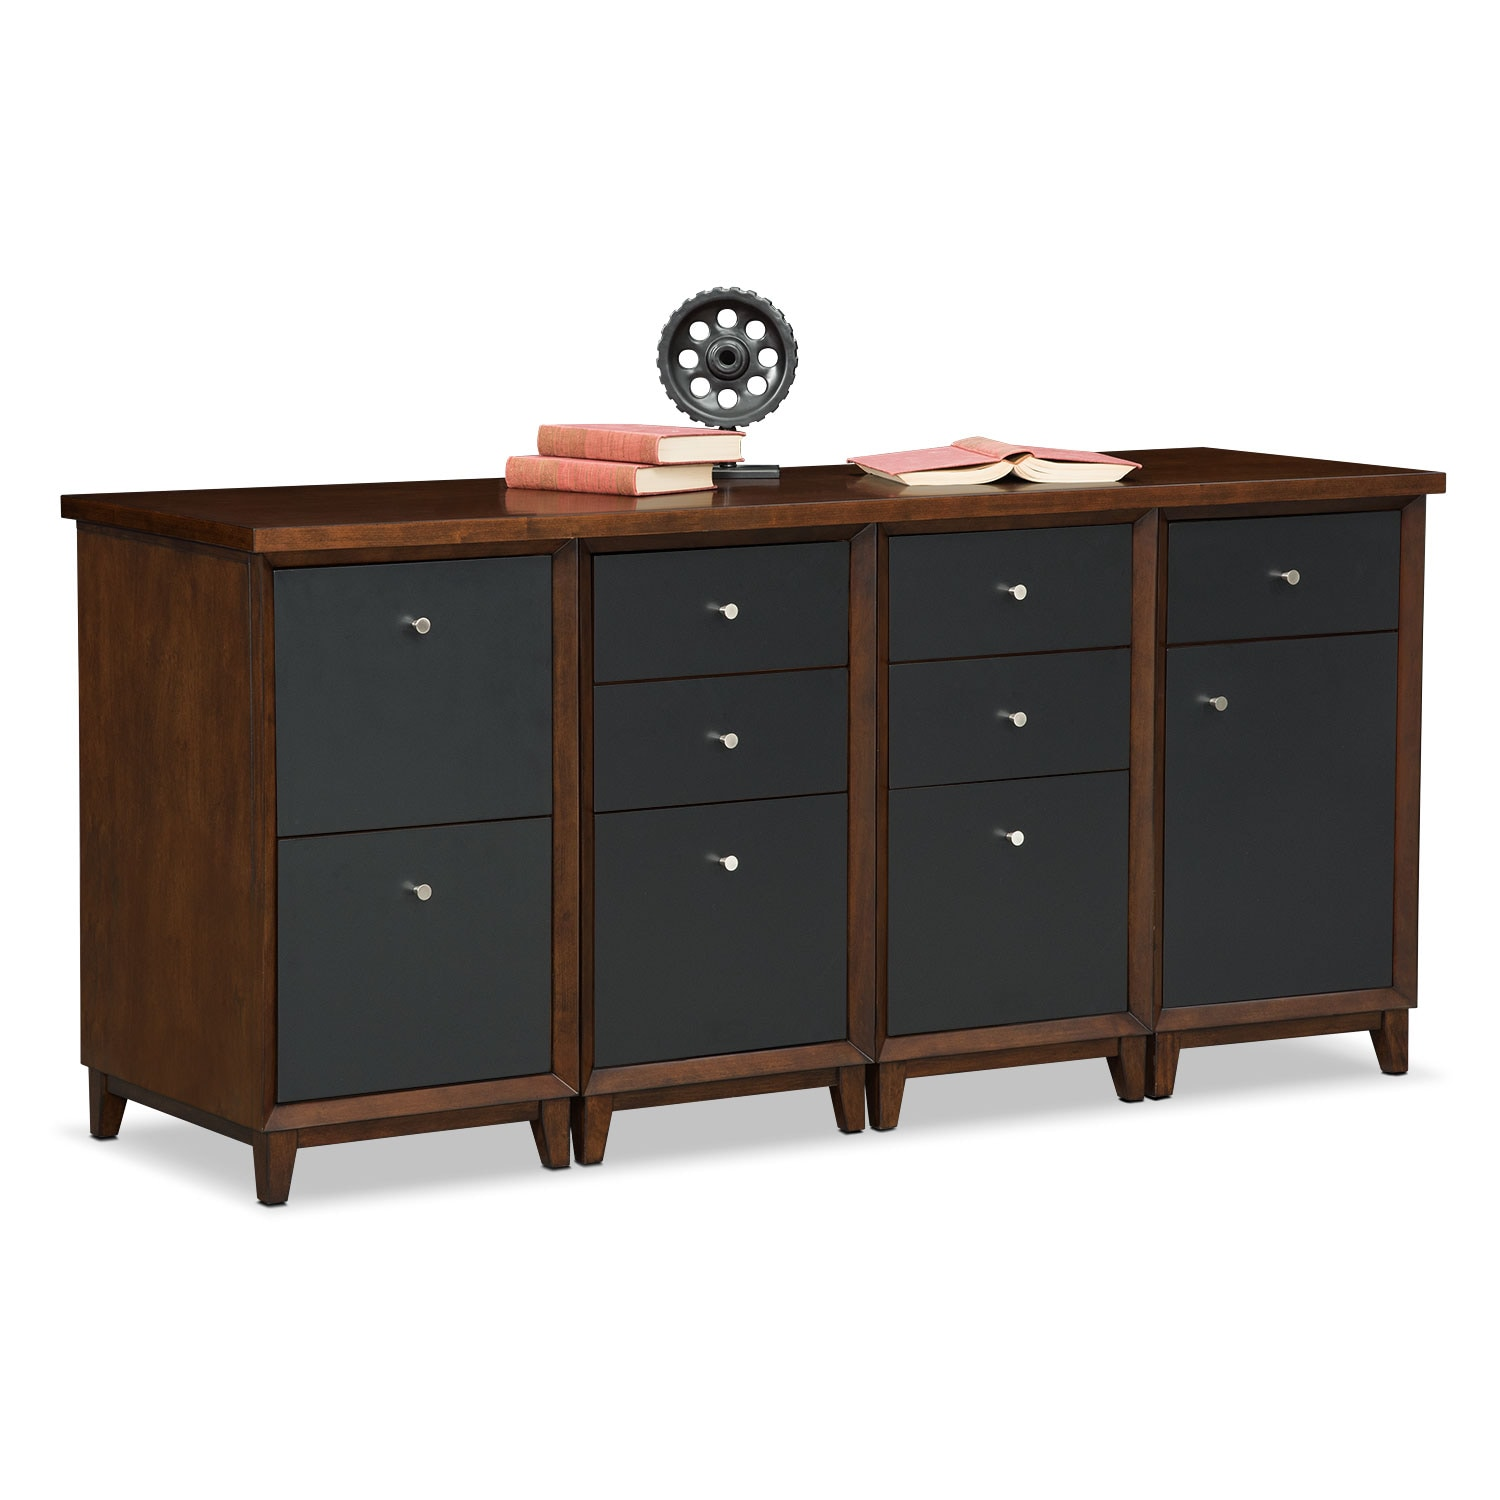 Home Office Furniture - Oslo Black Credenza Desk